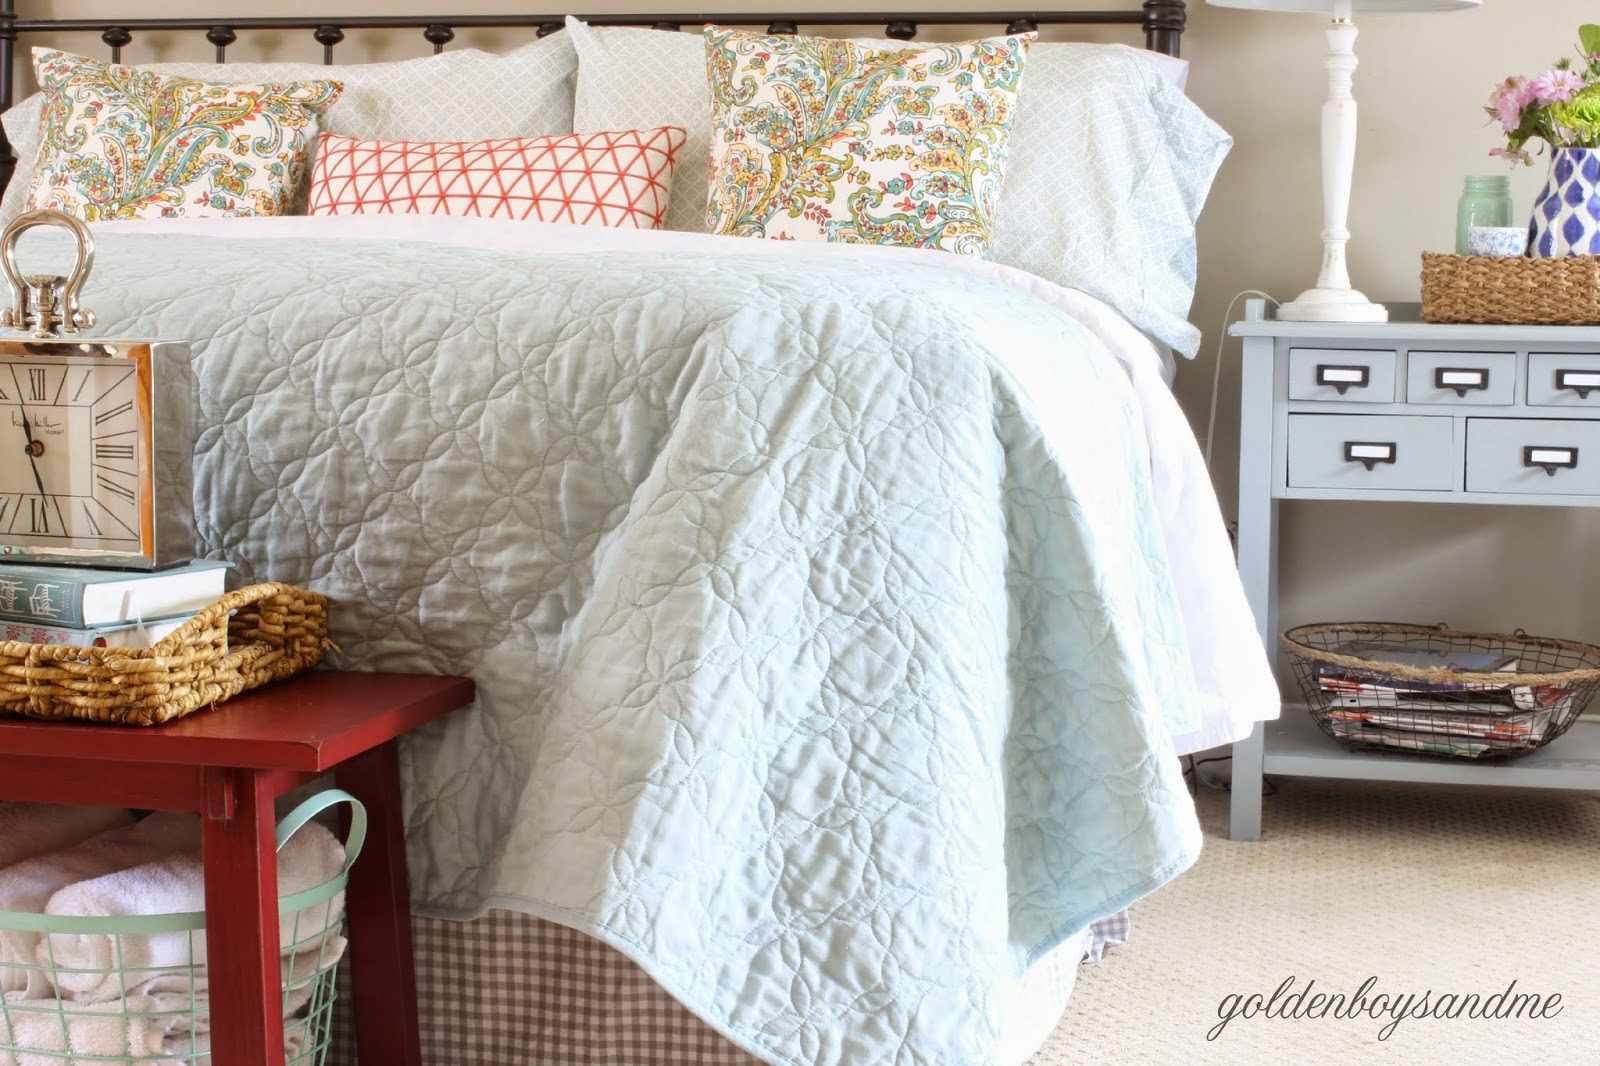 Spring master bedroom with mint and coral bedding-www.goldenboysandme.com